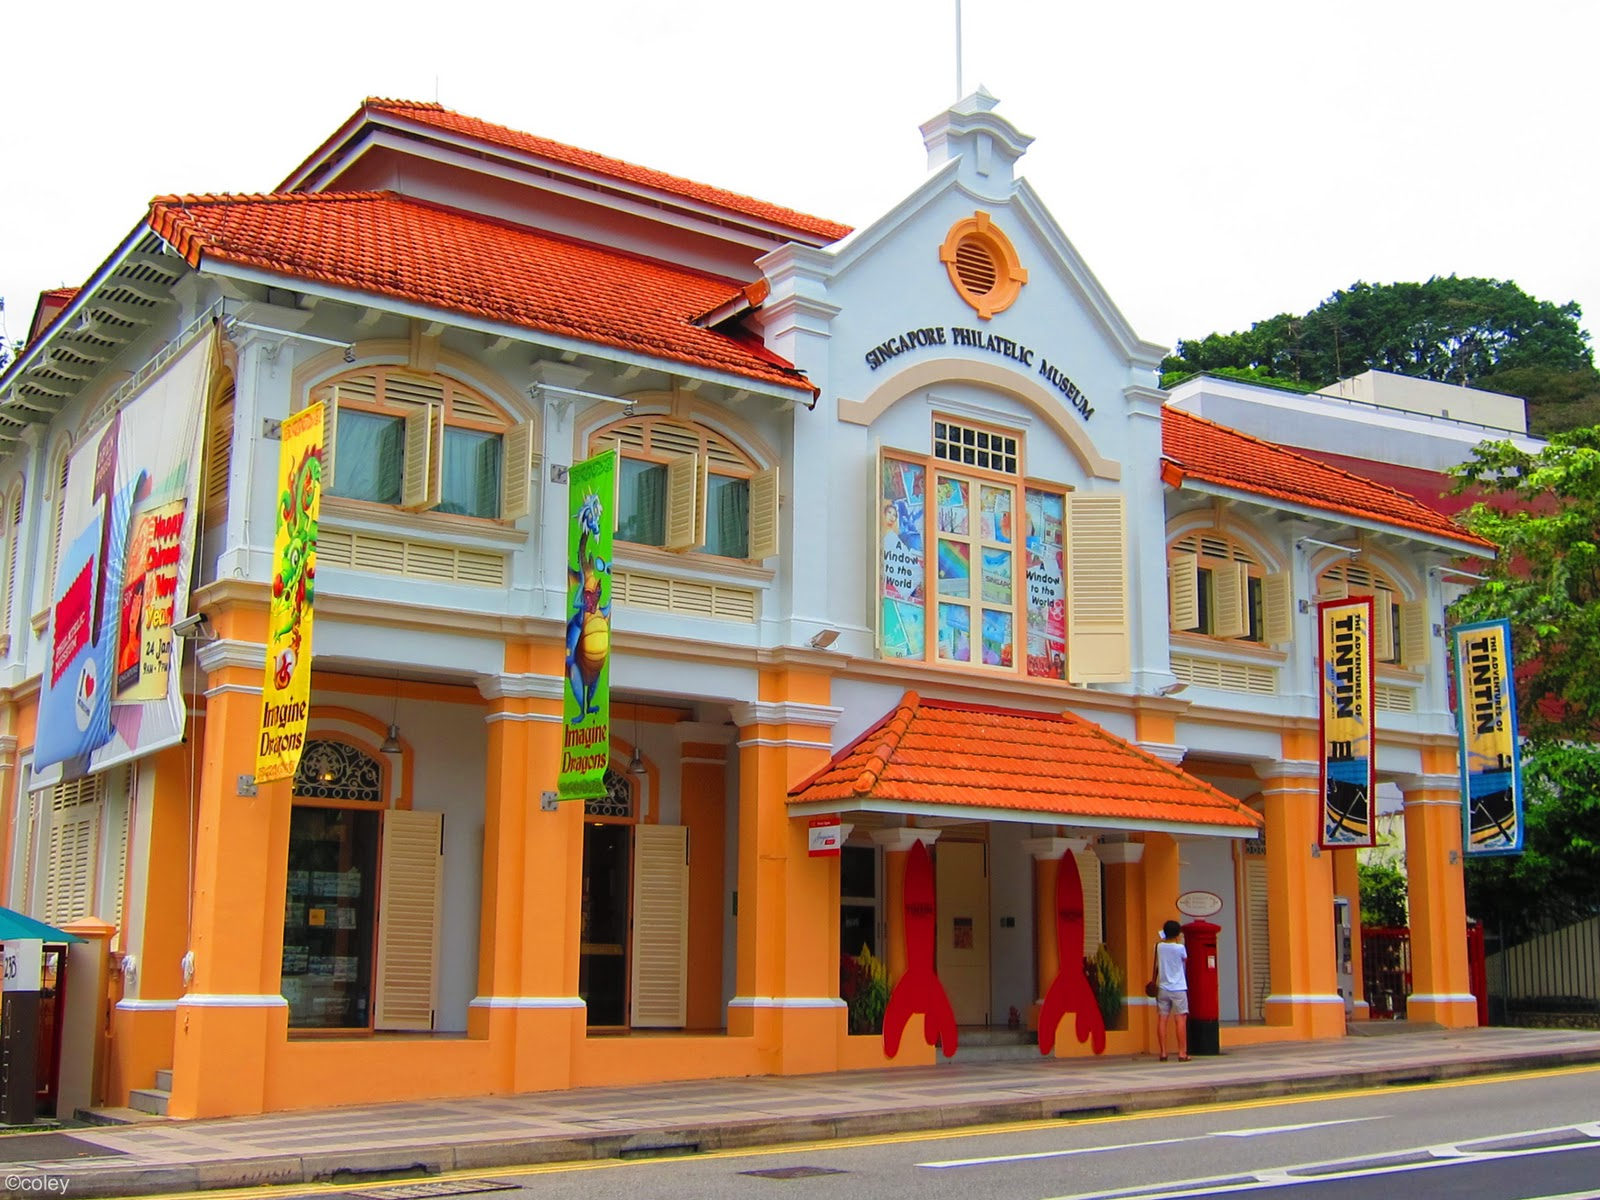 Singapore Philatelic Museum Location Map,Location Map of Singapore Philatelic Museum,Singapore Philatelic Museum accommodation destinations attractions hotels map reviews photos pictures,singapore philatelic museum parking map star wars green room,23b coleman street singapore philatelic museum